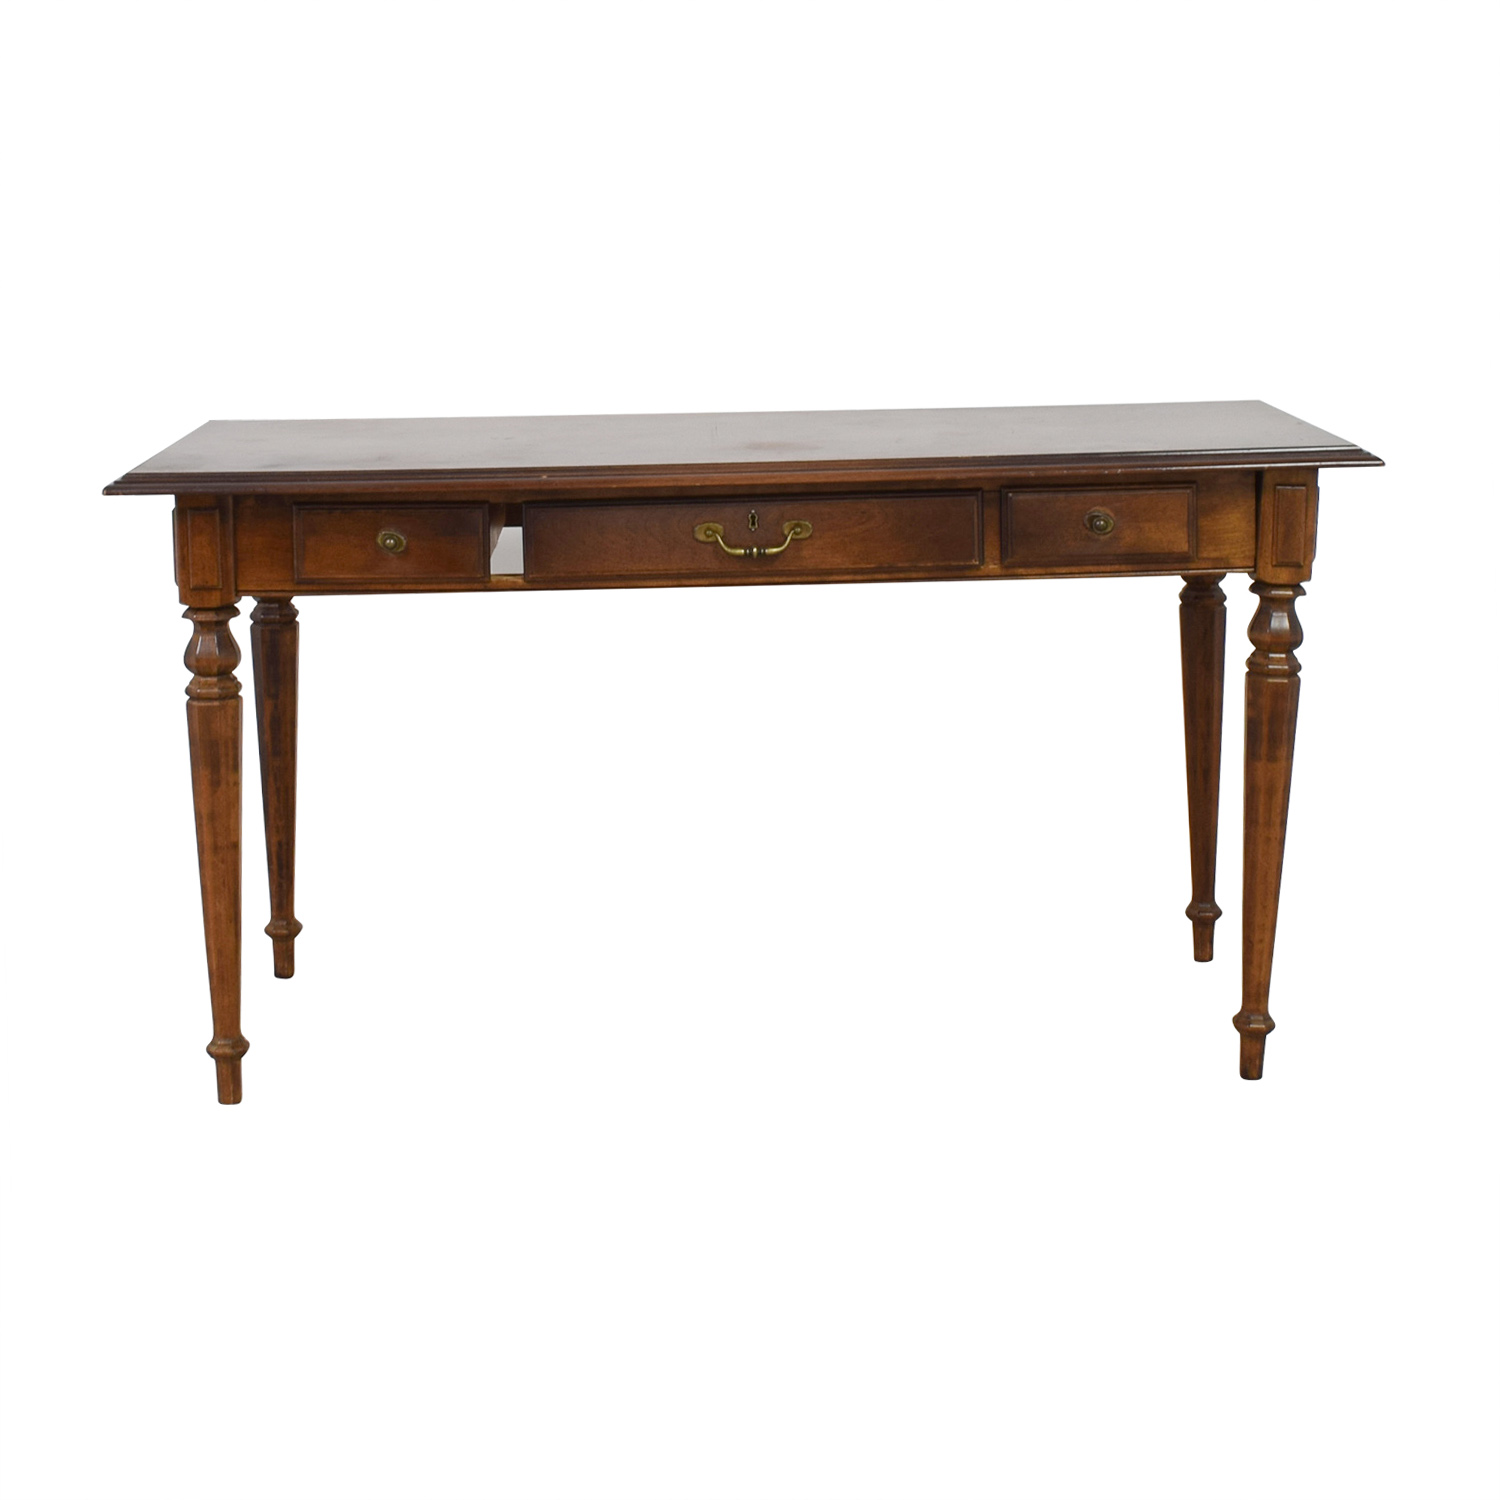 Ethan Allen Ethan Allen Three-Drawer Hardwood Desk for sale